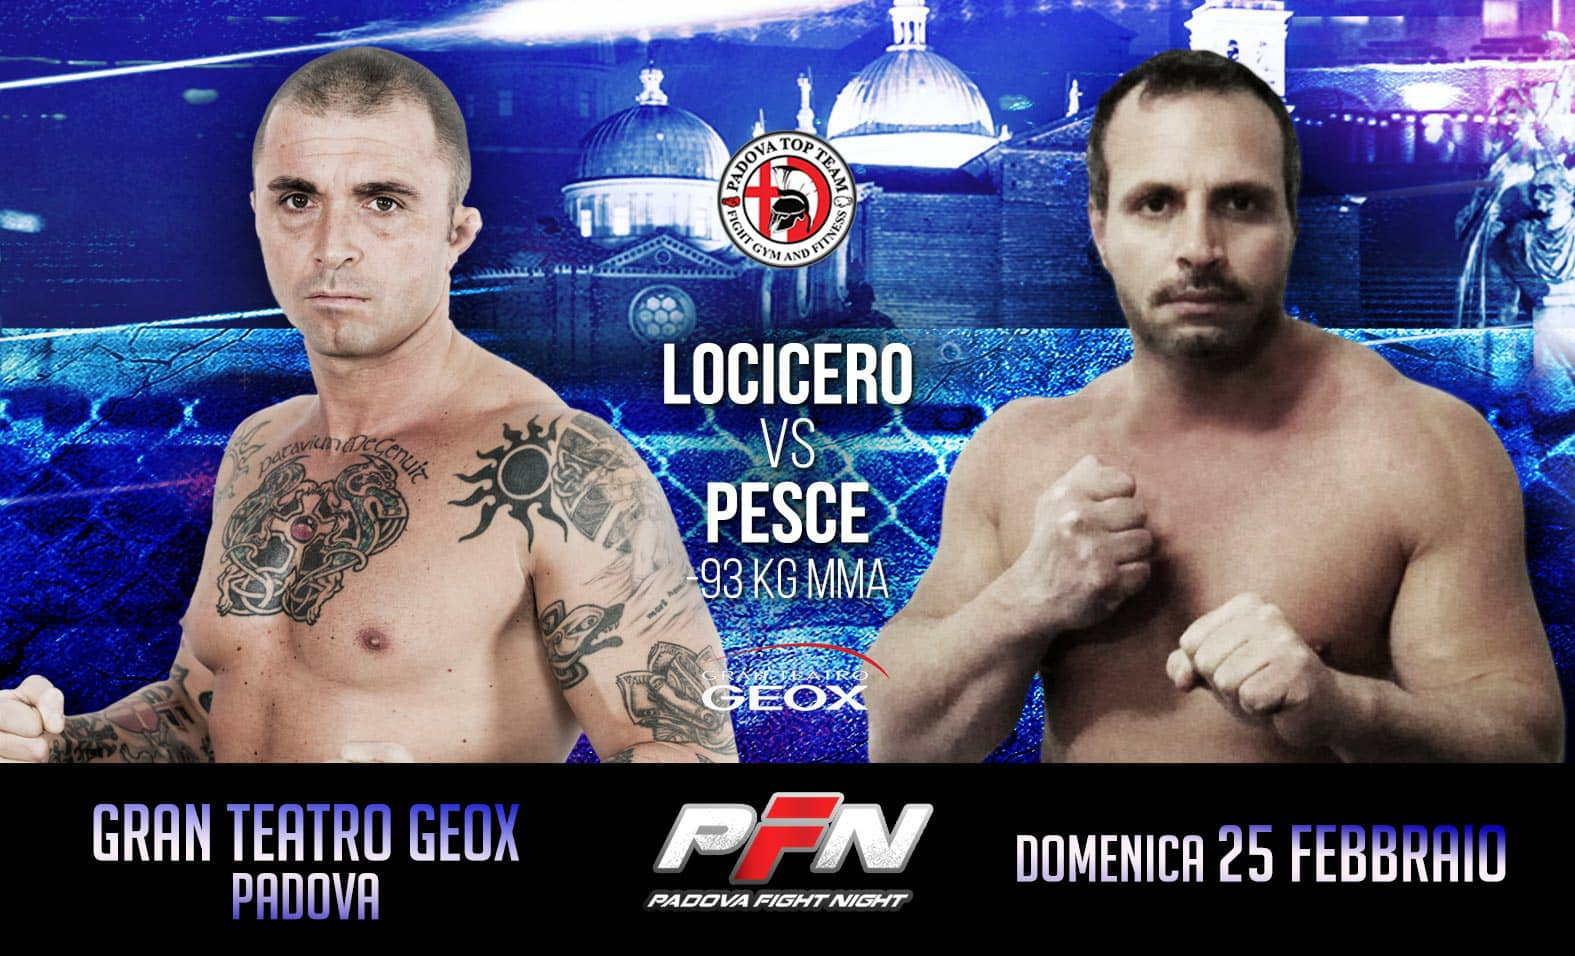 PADOVA FIGHT NIGHT 7